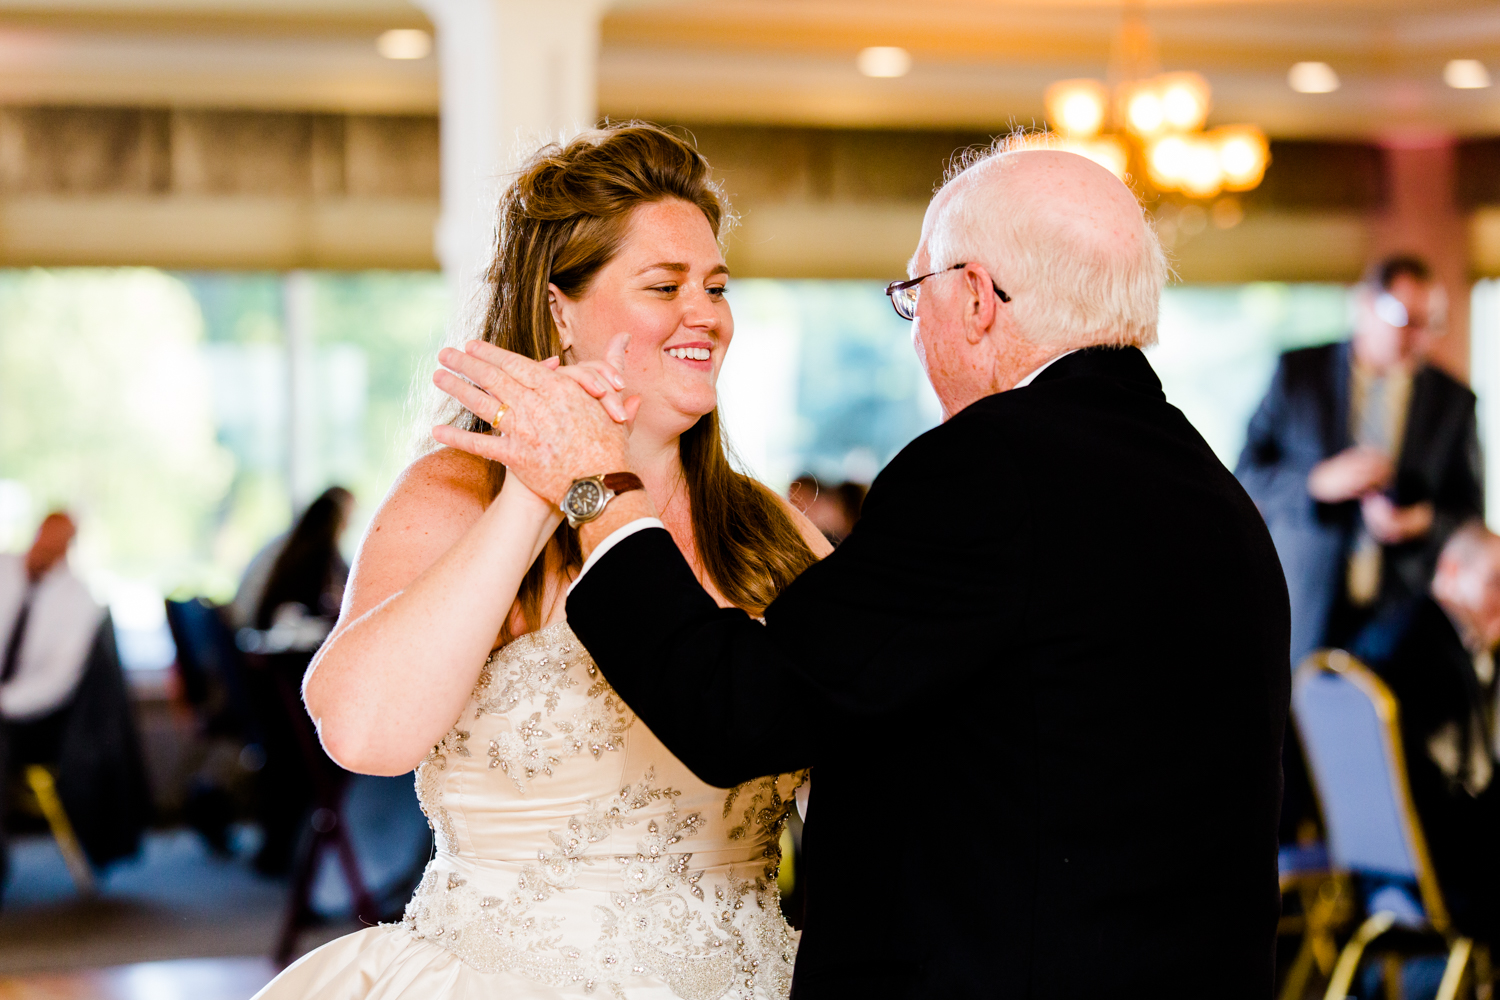 Bride smiles at her dad as they share a dance during her wedding reception.